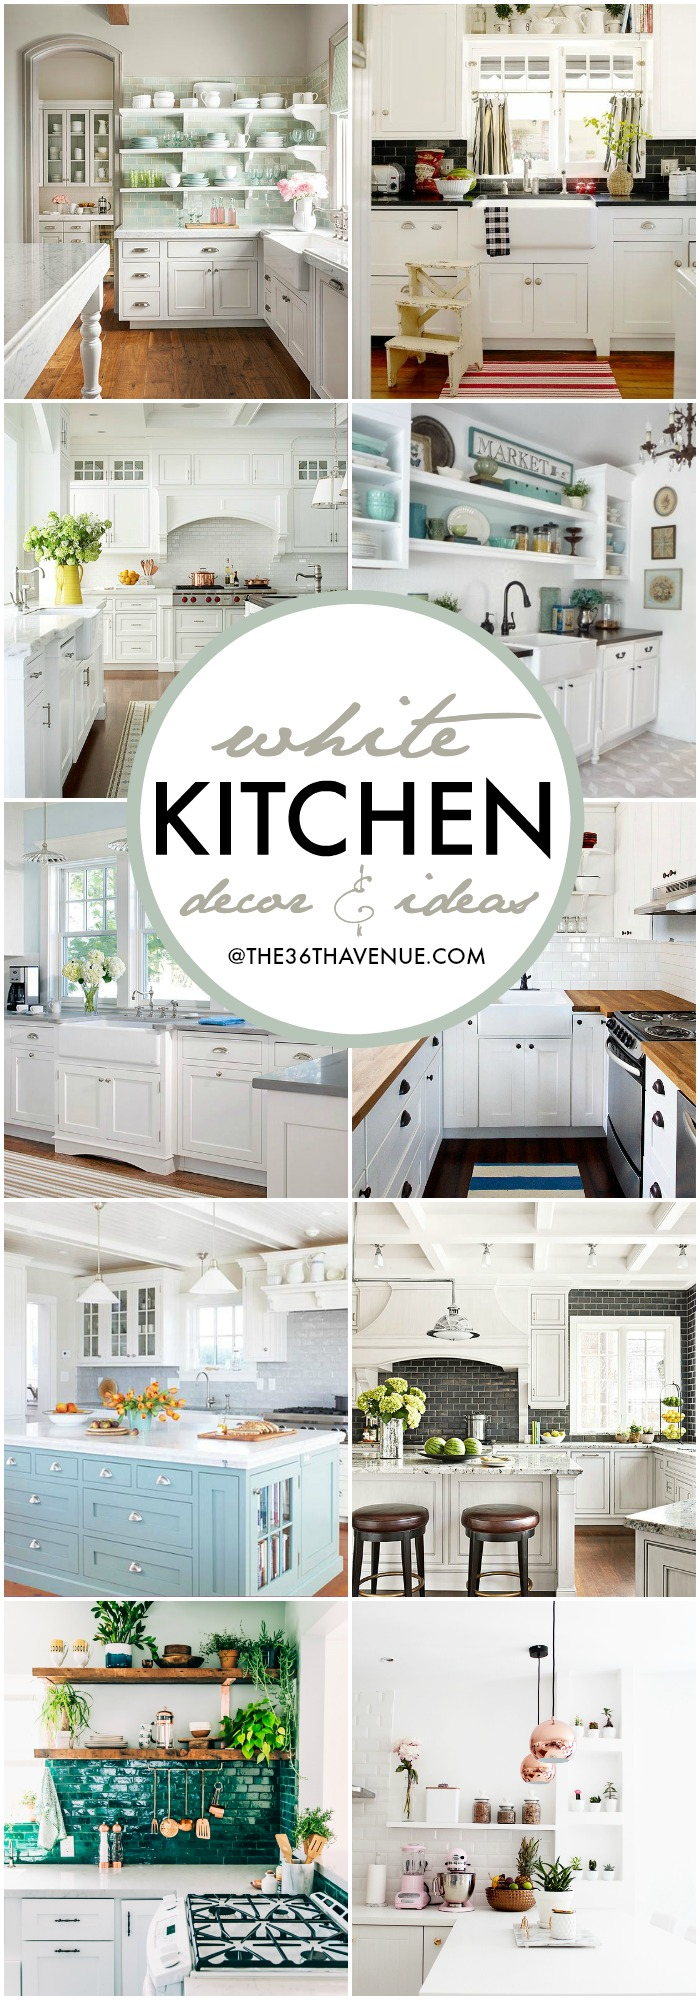 White Kitchen Decor Ideas the36thavenue.com